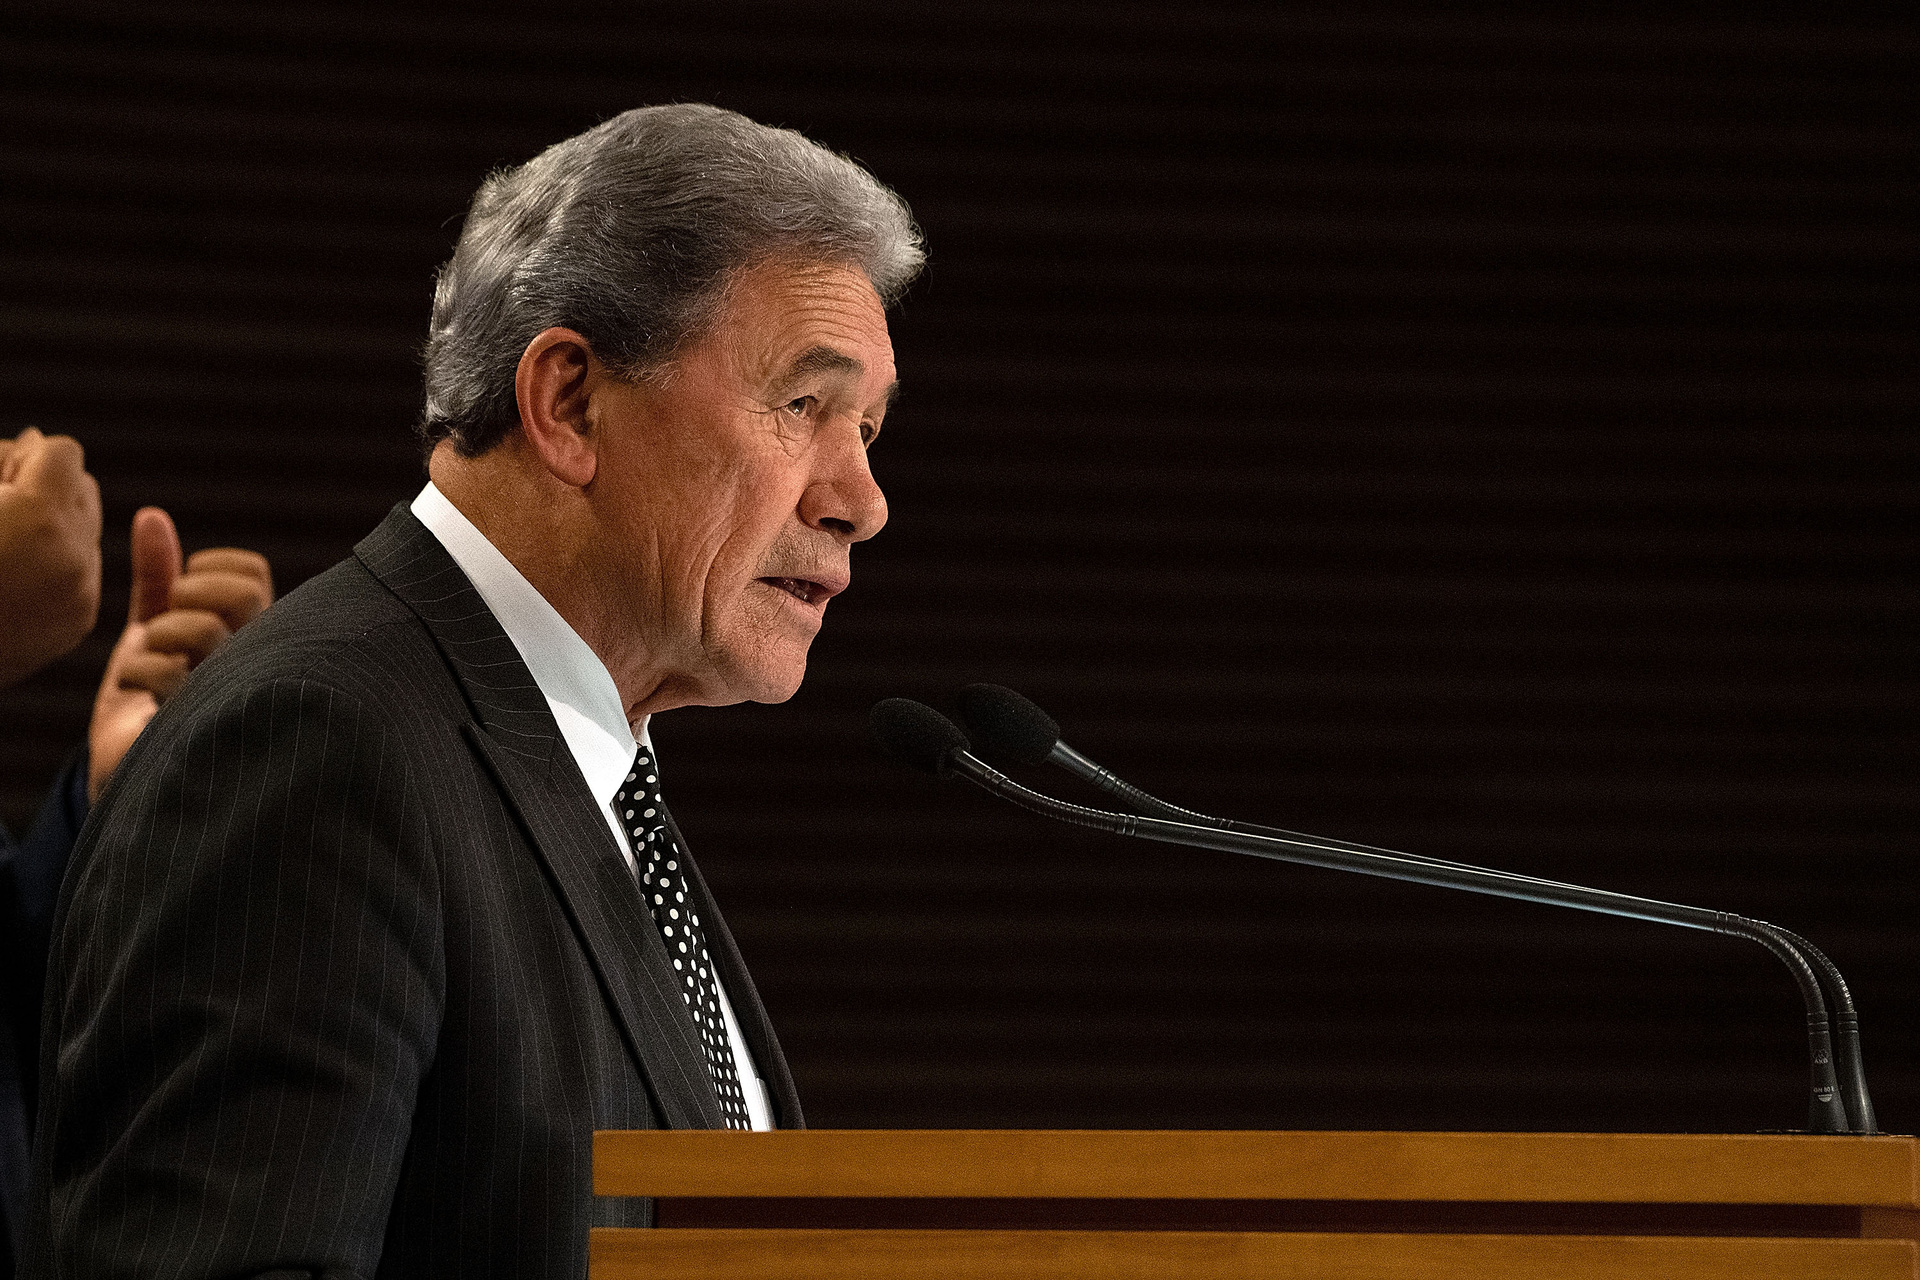 Winston Peters calls Labour turmoil a 'disgraceful orgy of speculation'